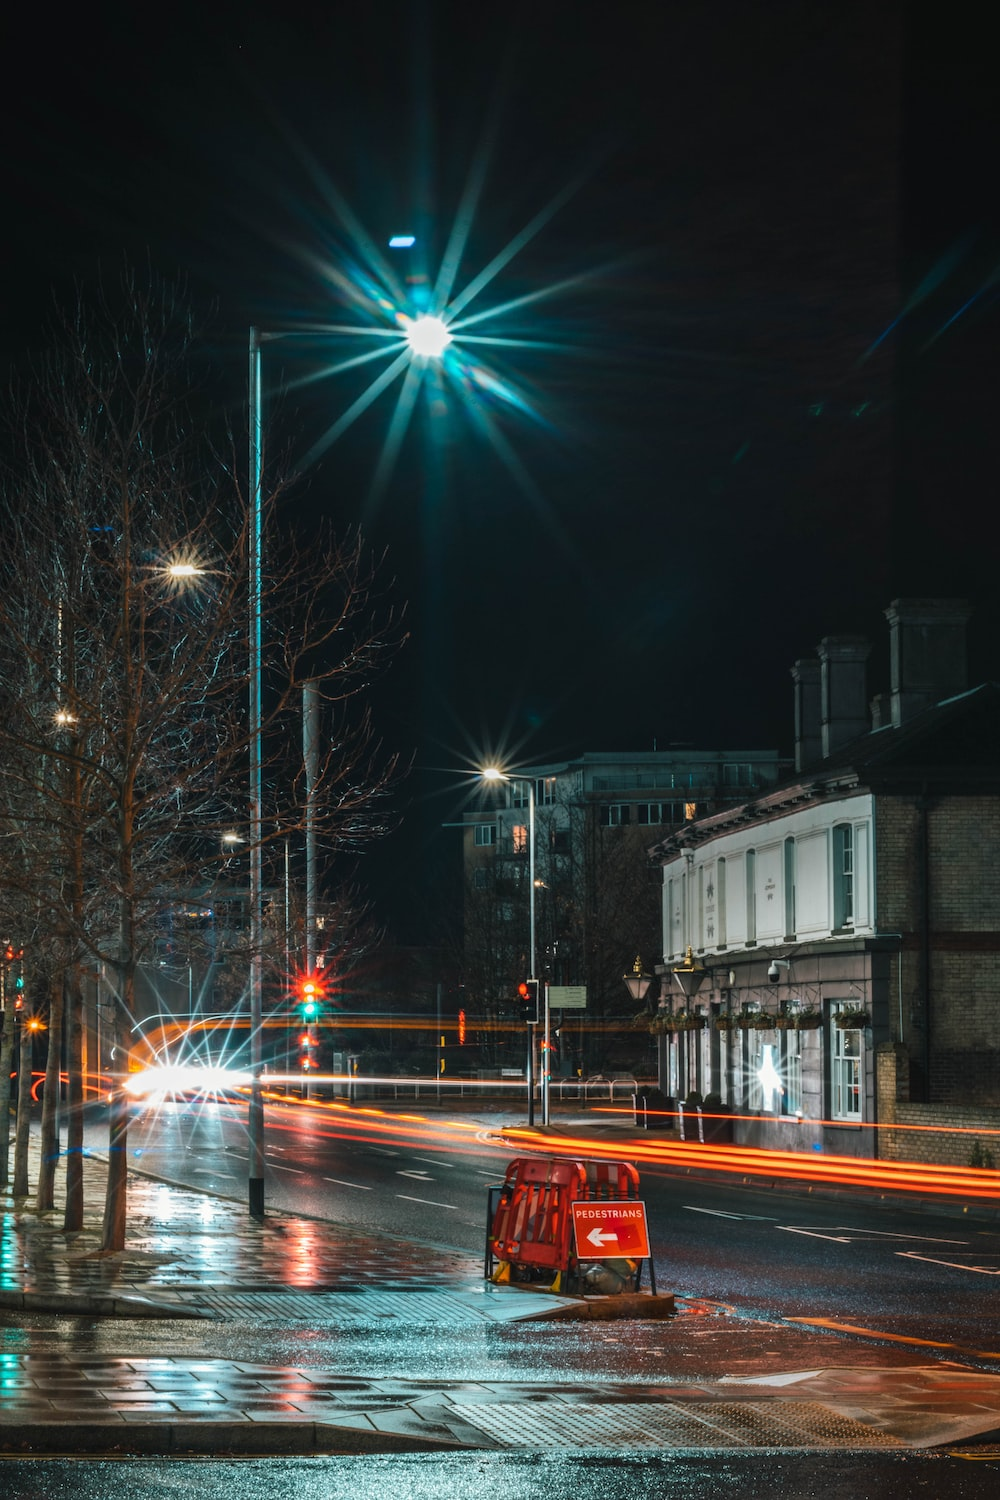 cars on road near building during night time